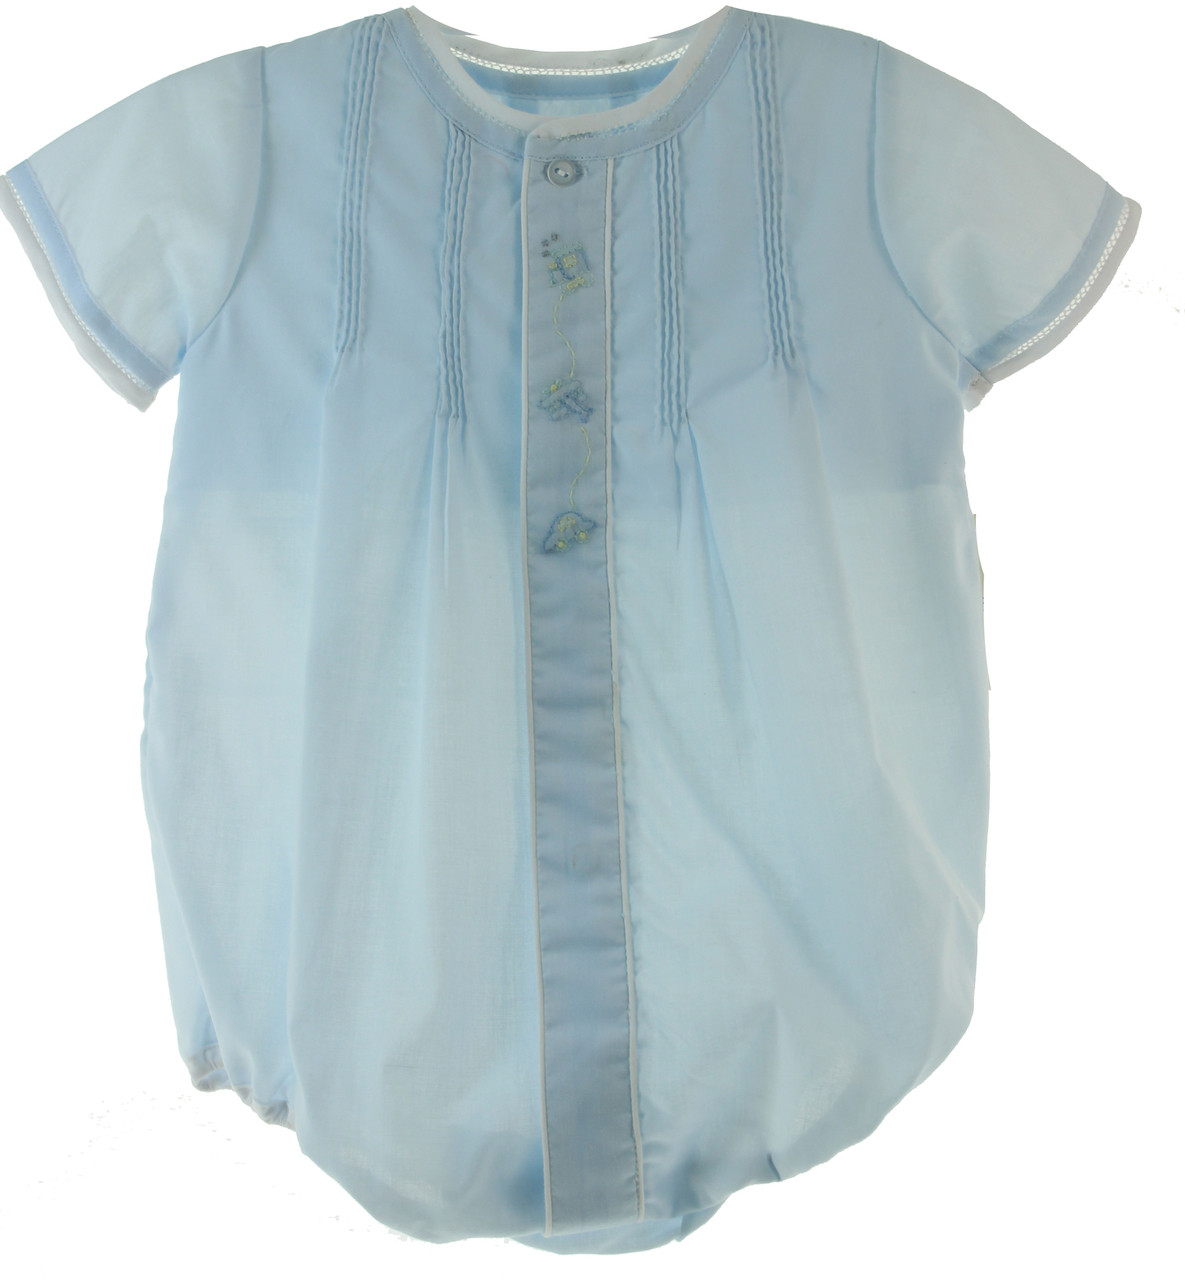 7e26f599557f4 Loading zoom. Baby Boys Airplane Bubble Outfit. Click to enlarge